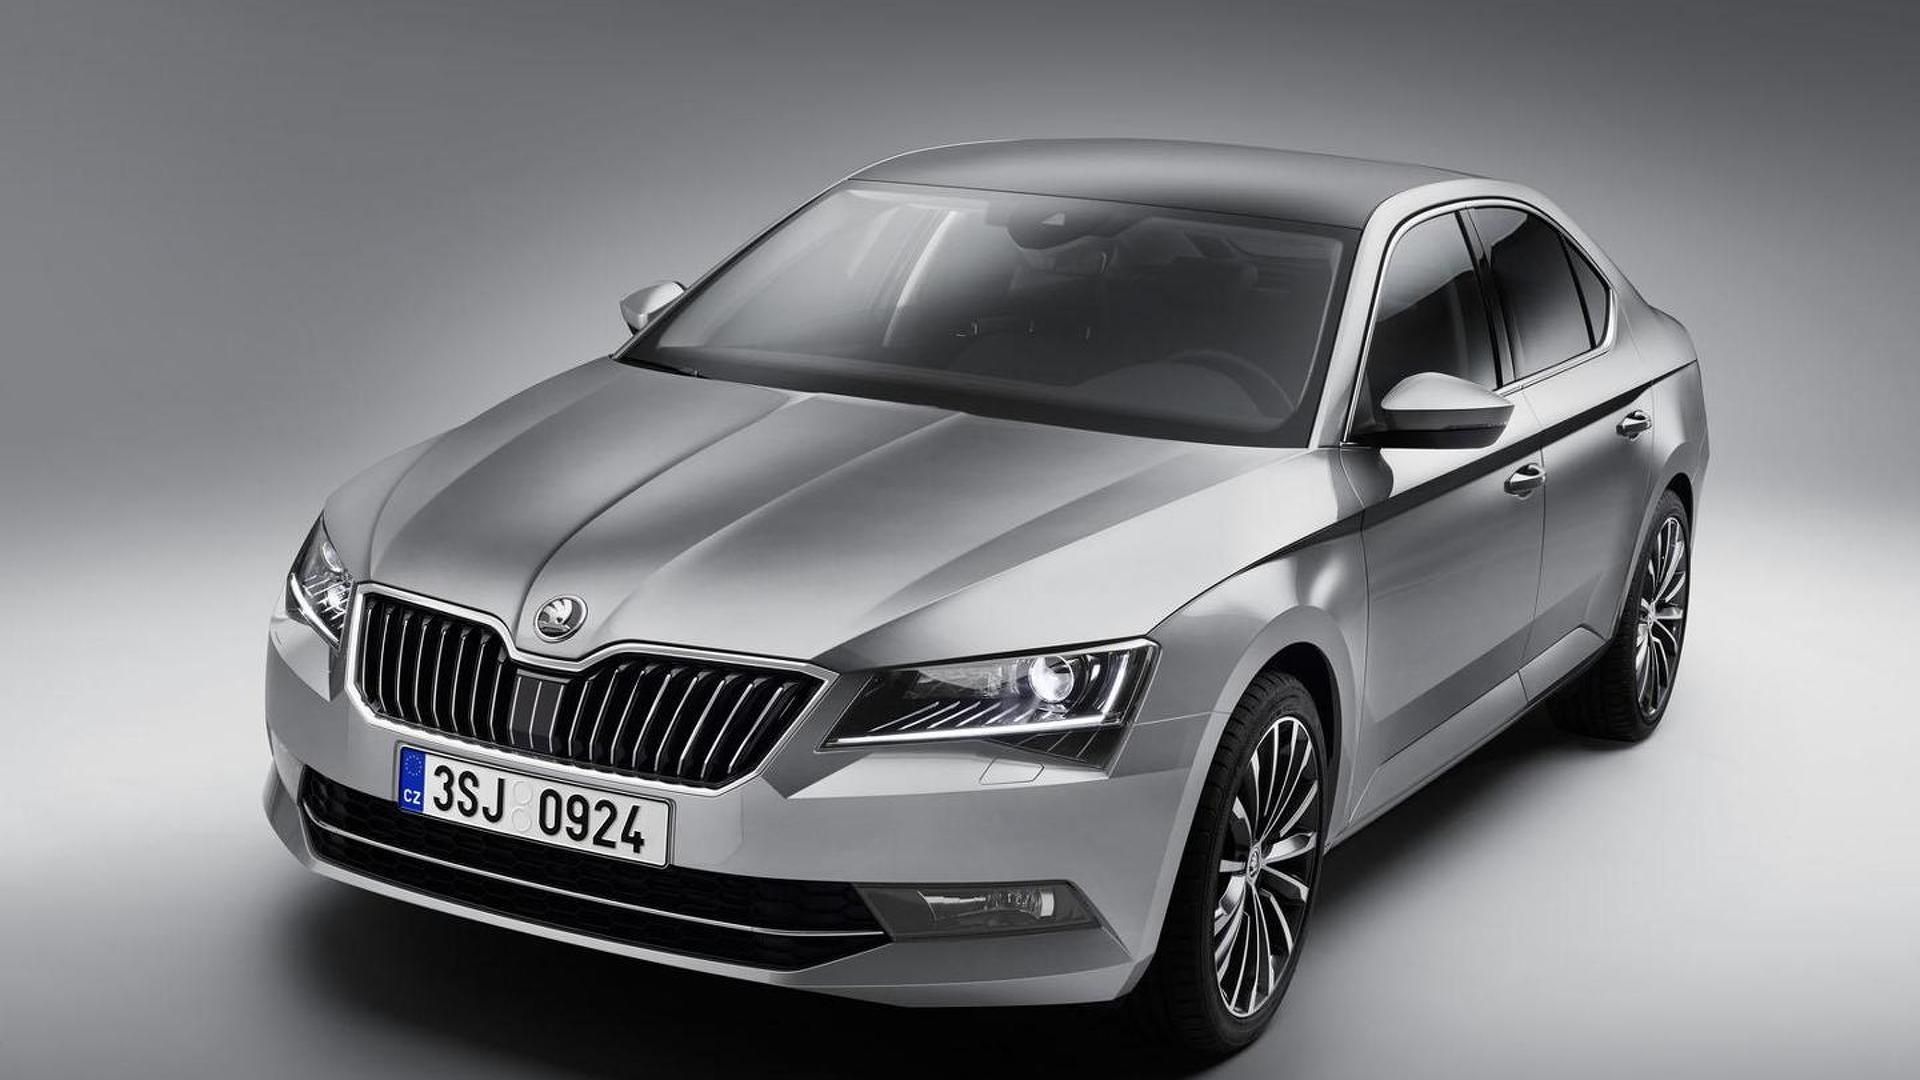 Skoda might come to United States, trademark applications suggest